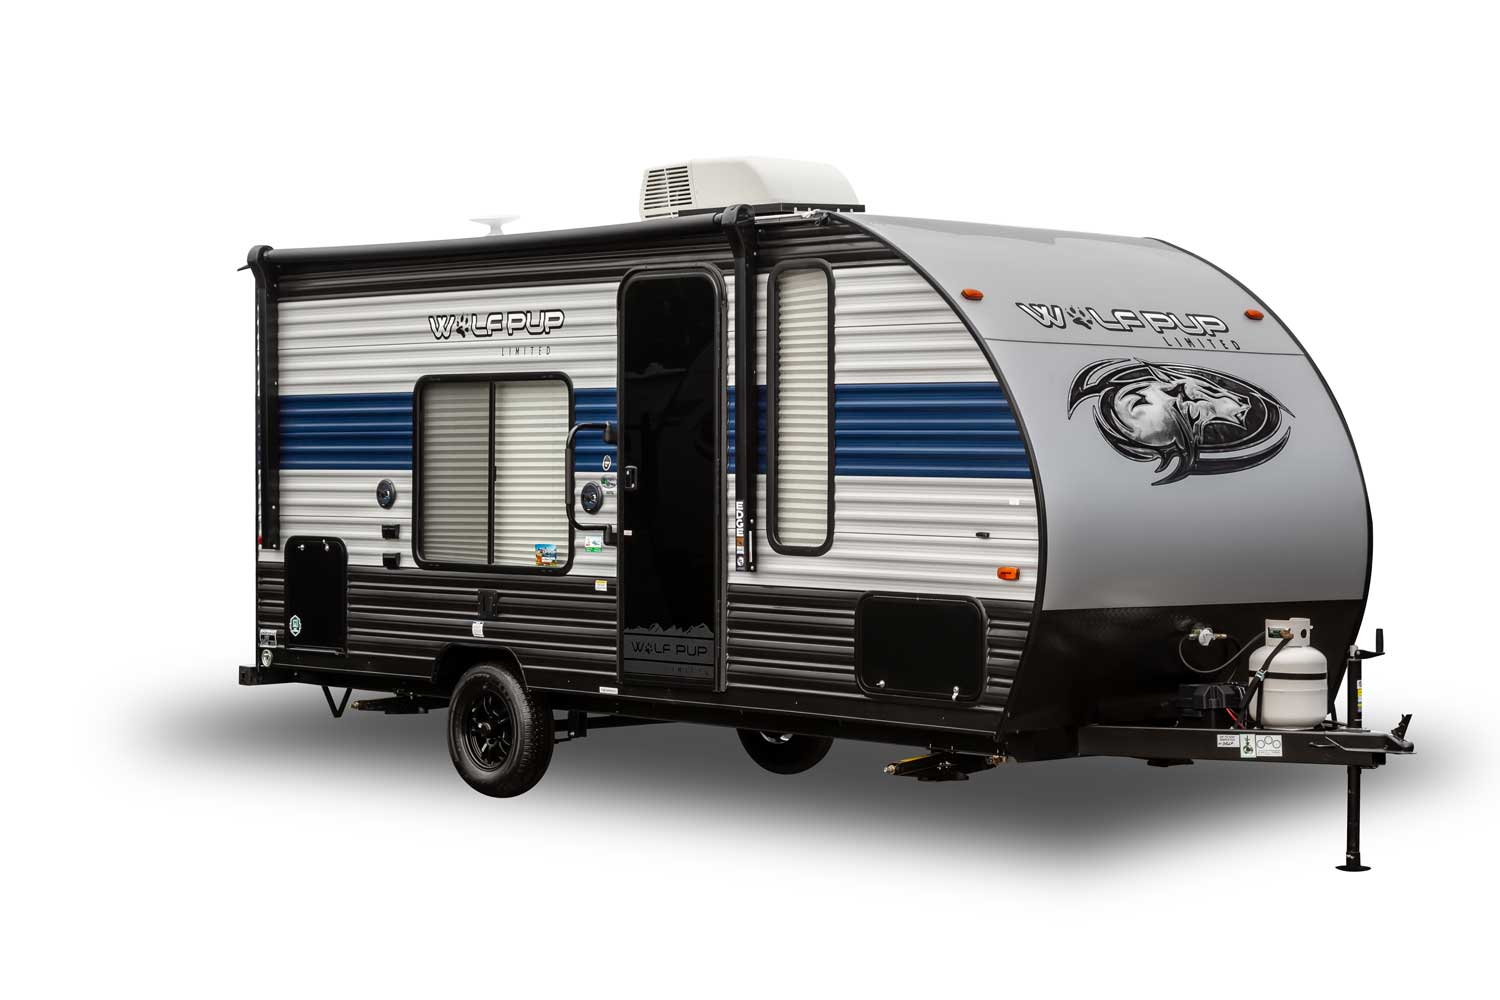 forest river cherokee wolf pup travel trailer exterior